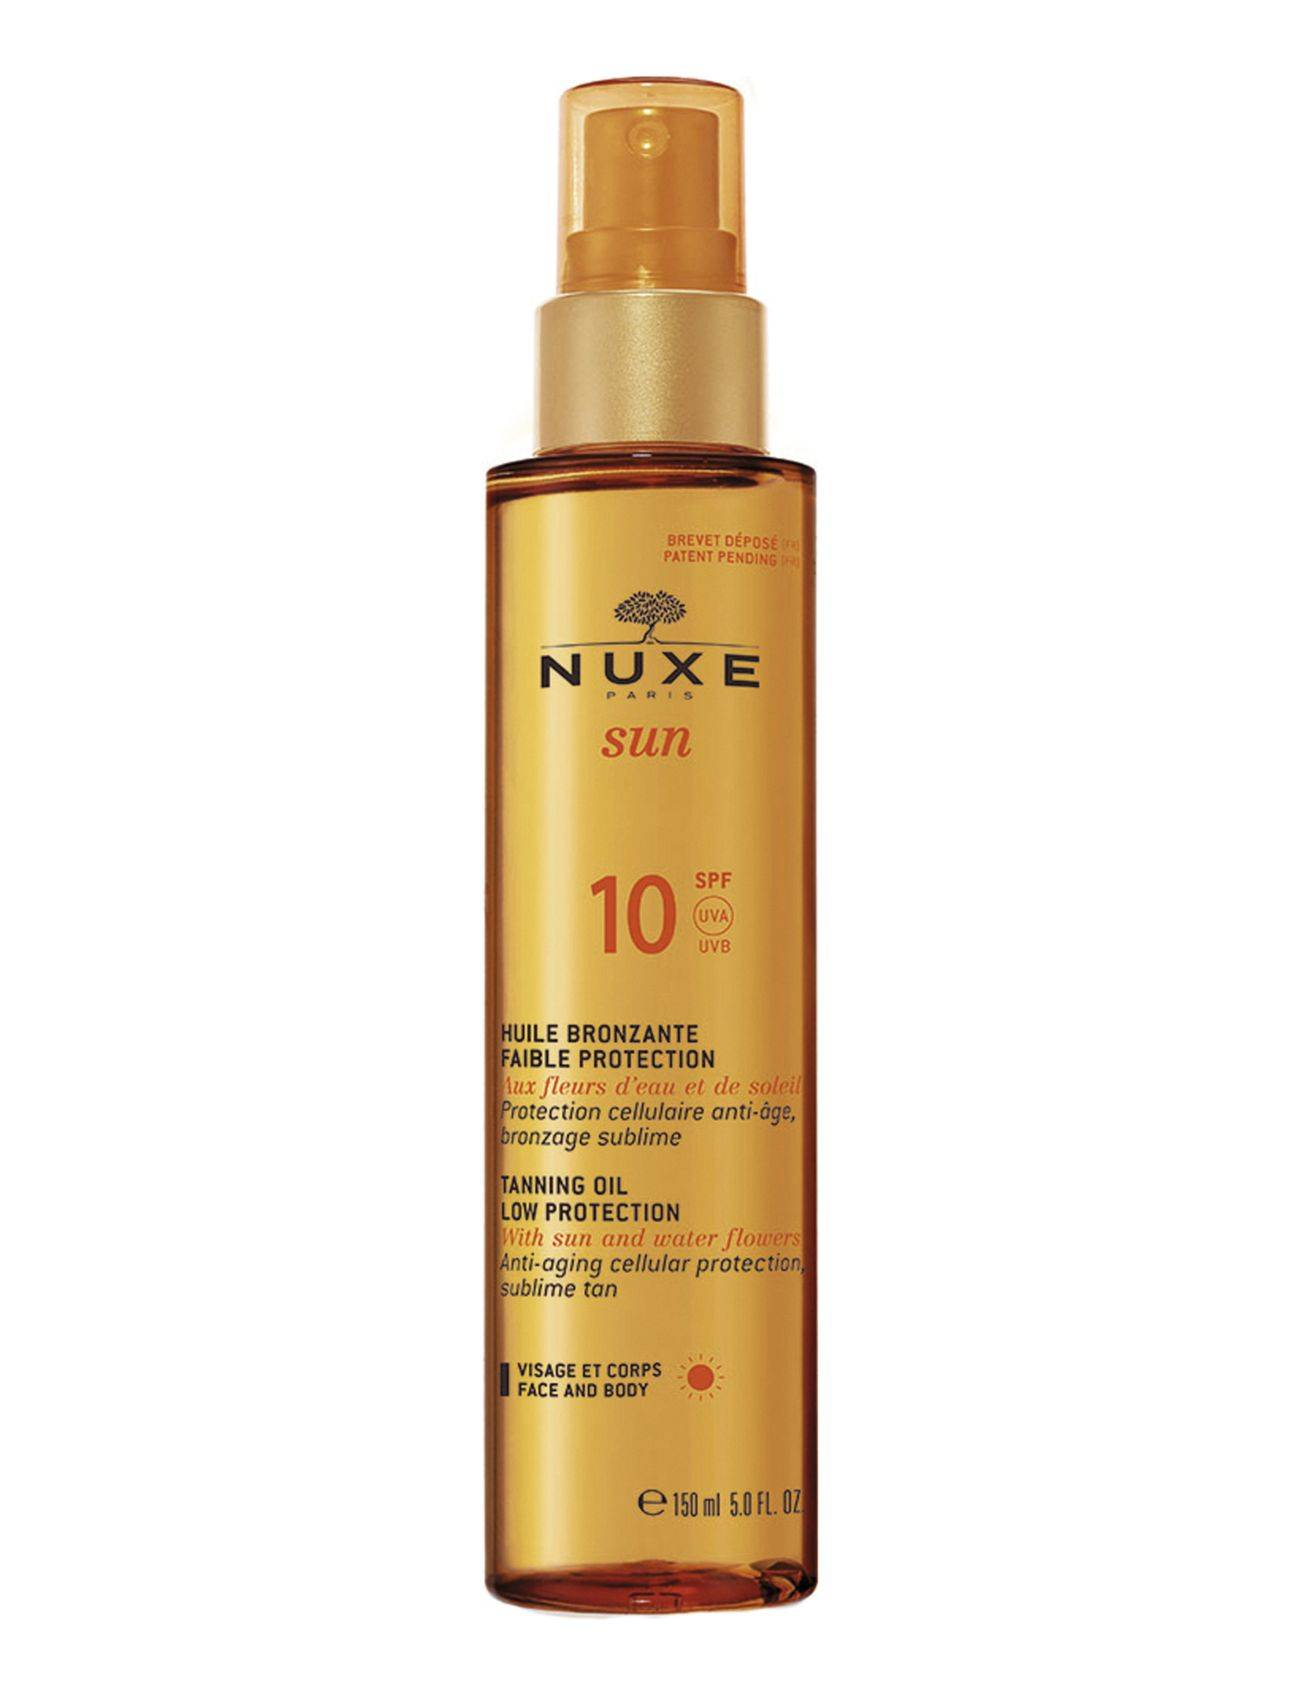 NUXE Tanning Oil Face & Body Spf10 Beauty MEN Skin Care Sun Products Face Nude NUXE